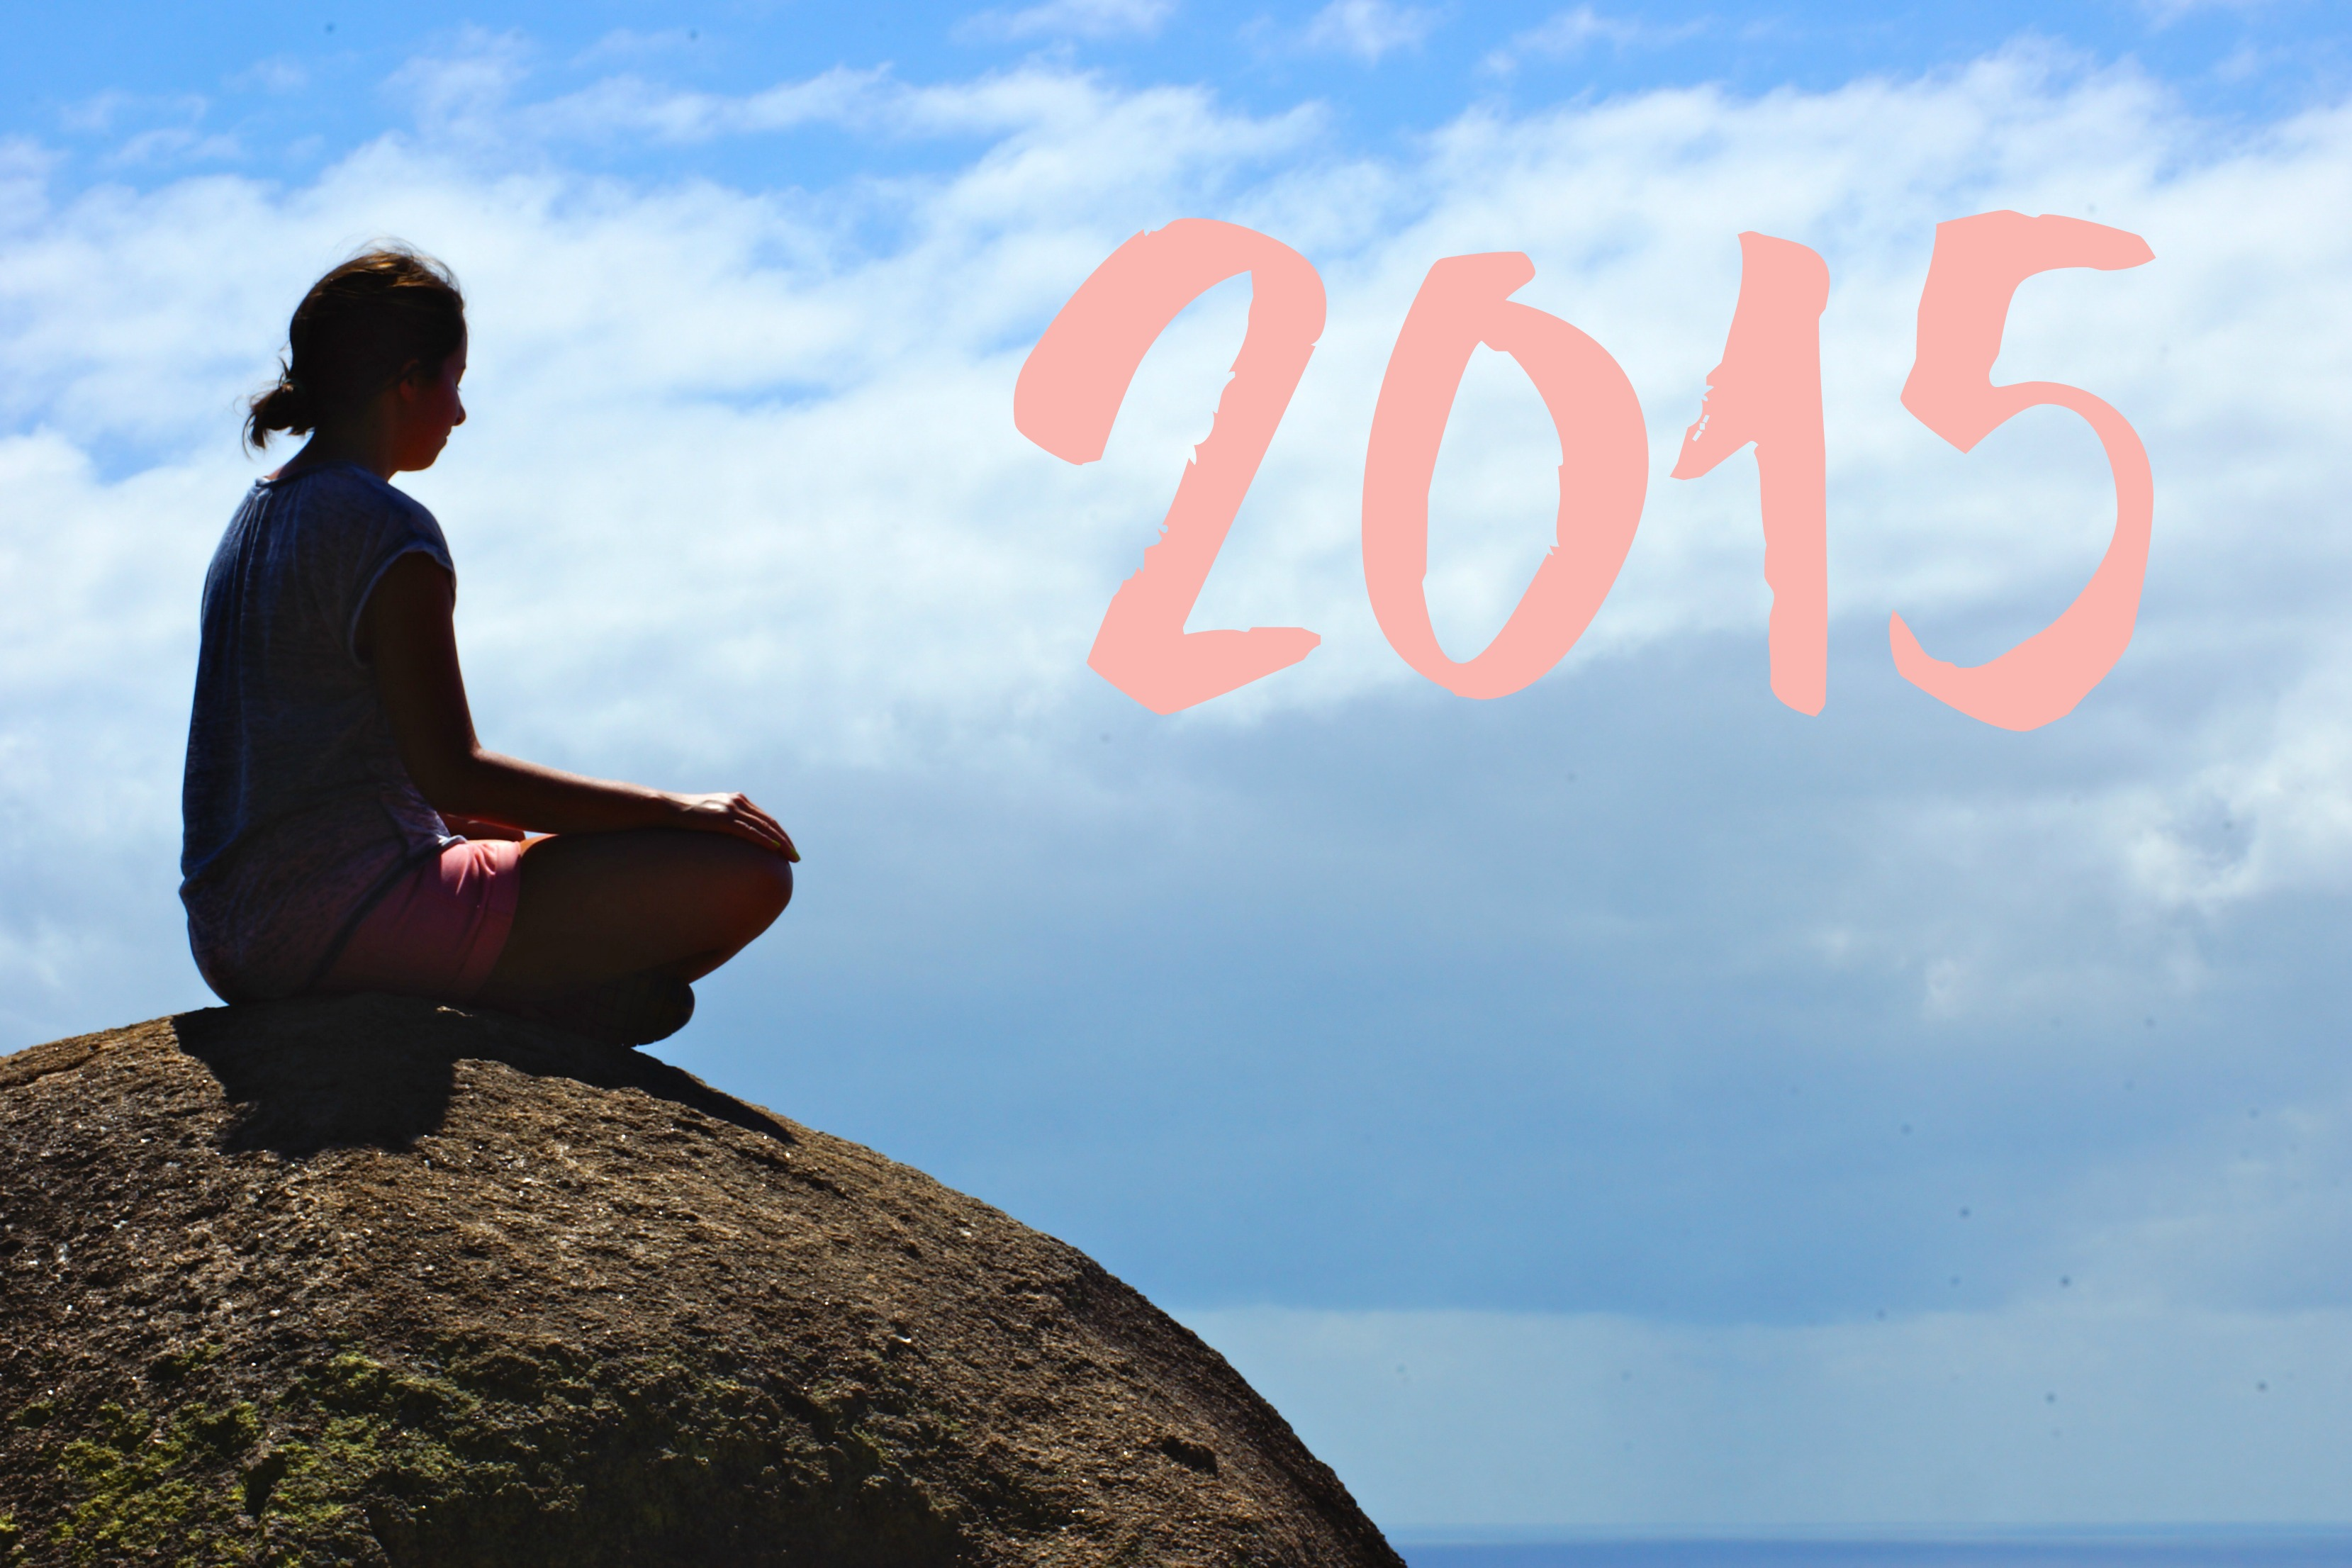 In the spirit of celebration, reflection and gratitude, here are some of the most profound lessons and experiences of my 2015... http://oneinfinitelife.com/2015-review/